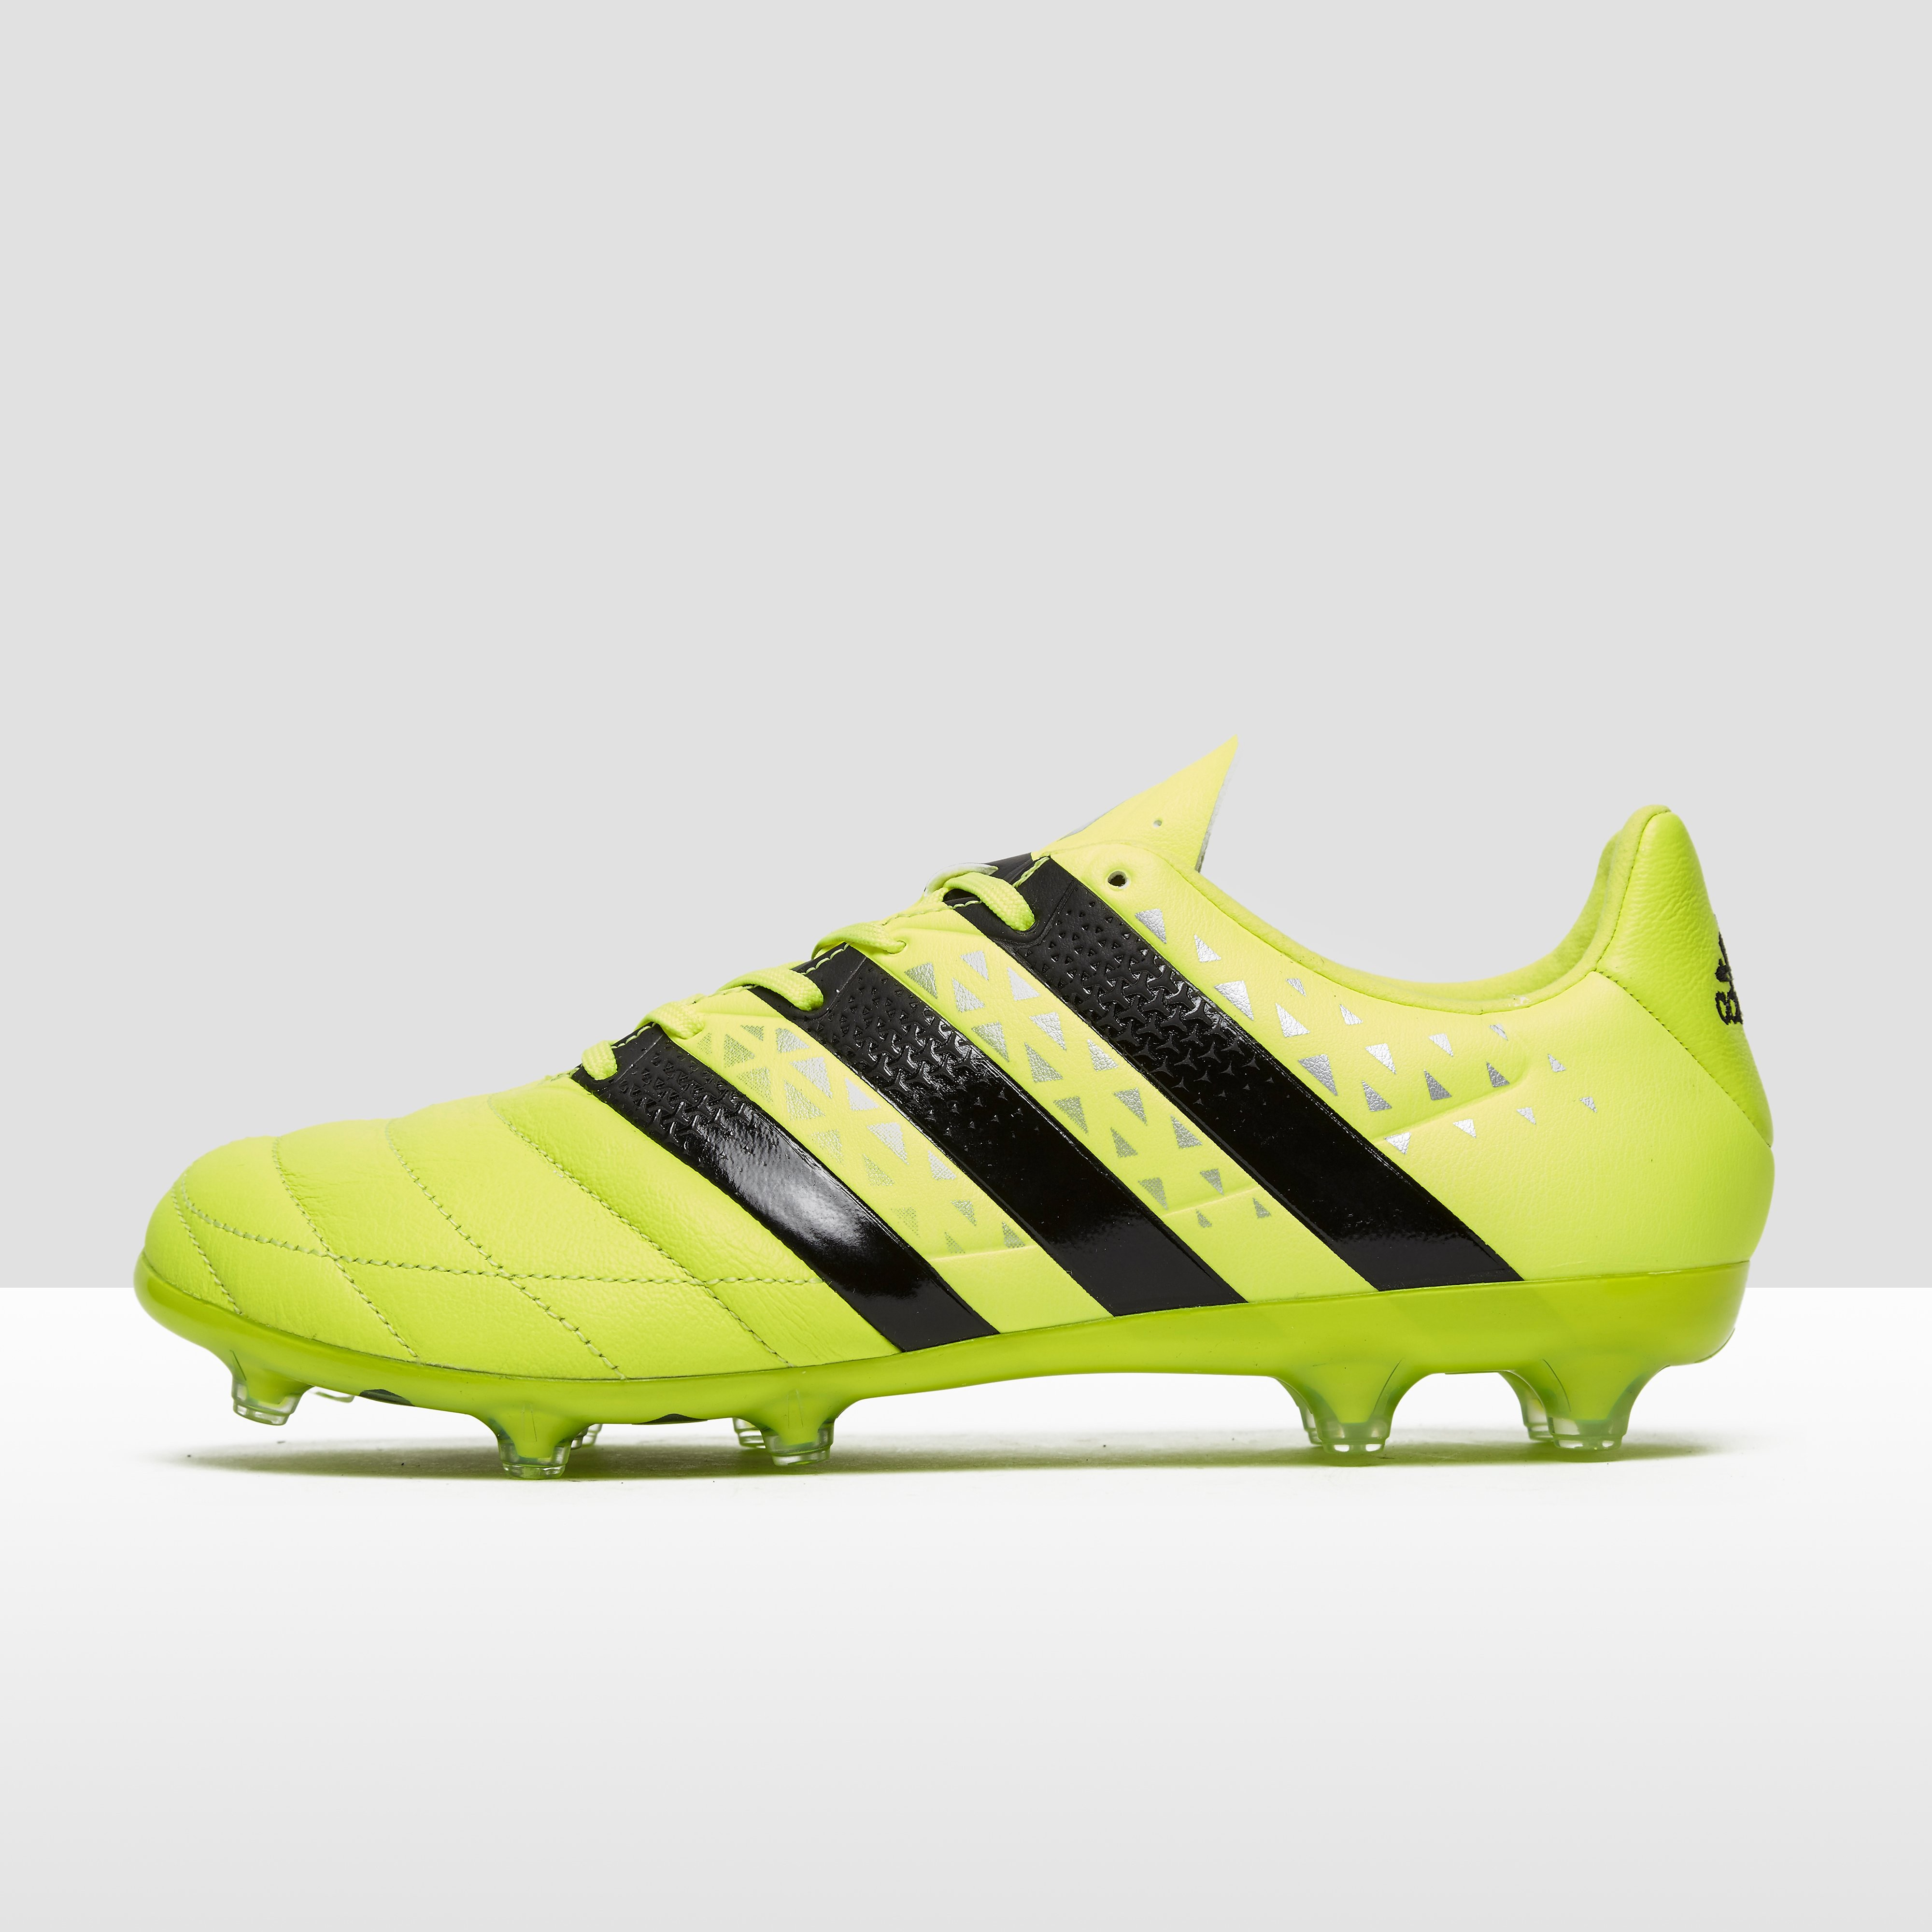 adidas Men's Ace 16.2 Leather FG Football Boots